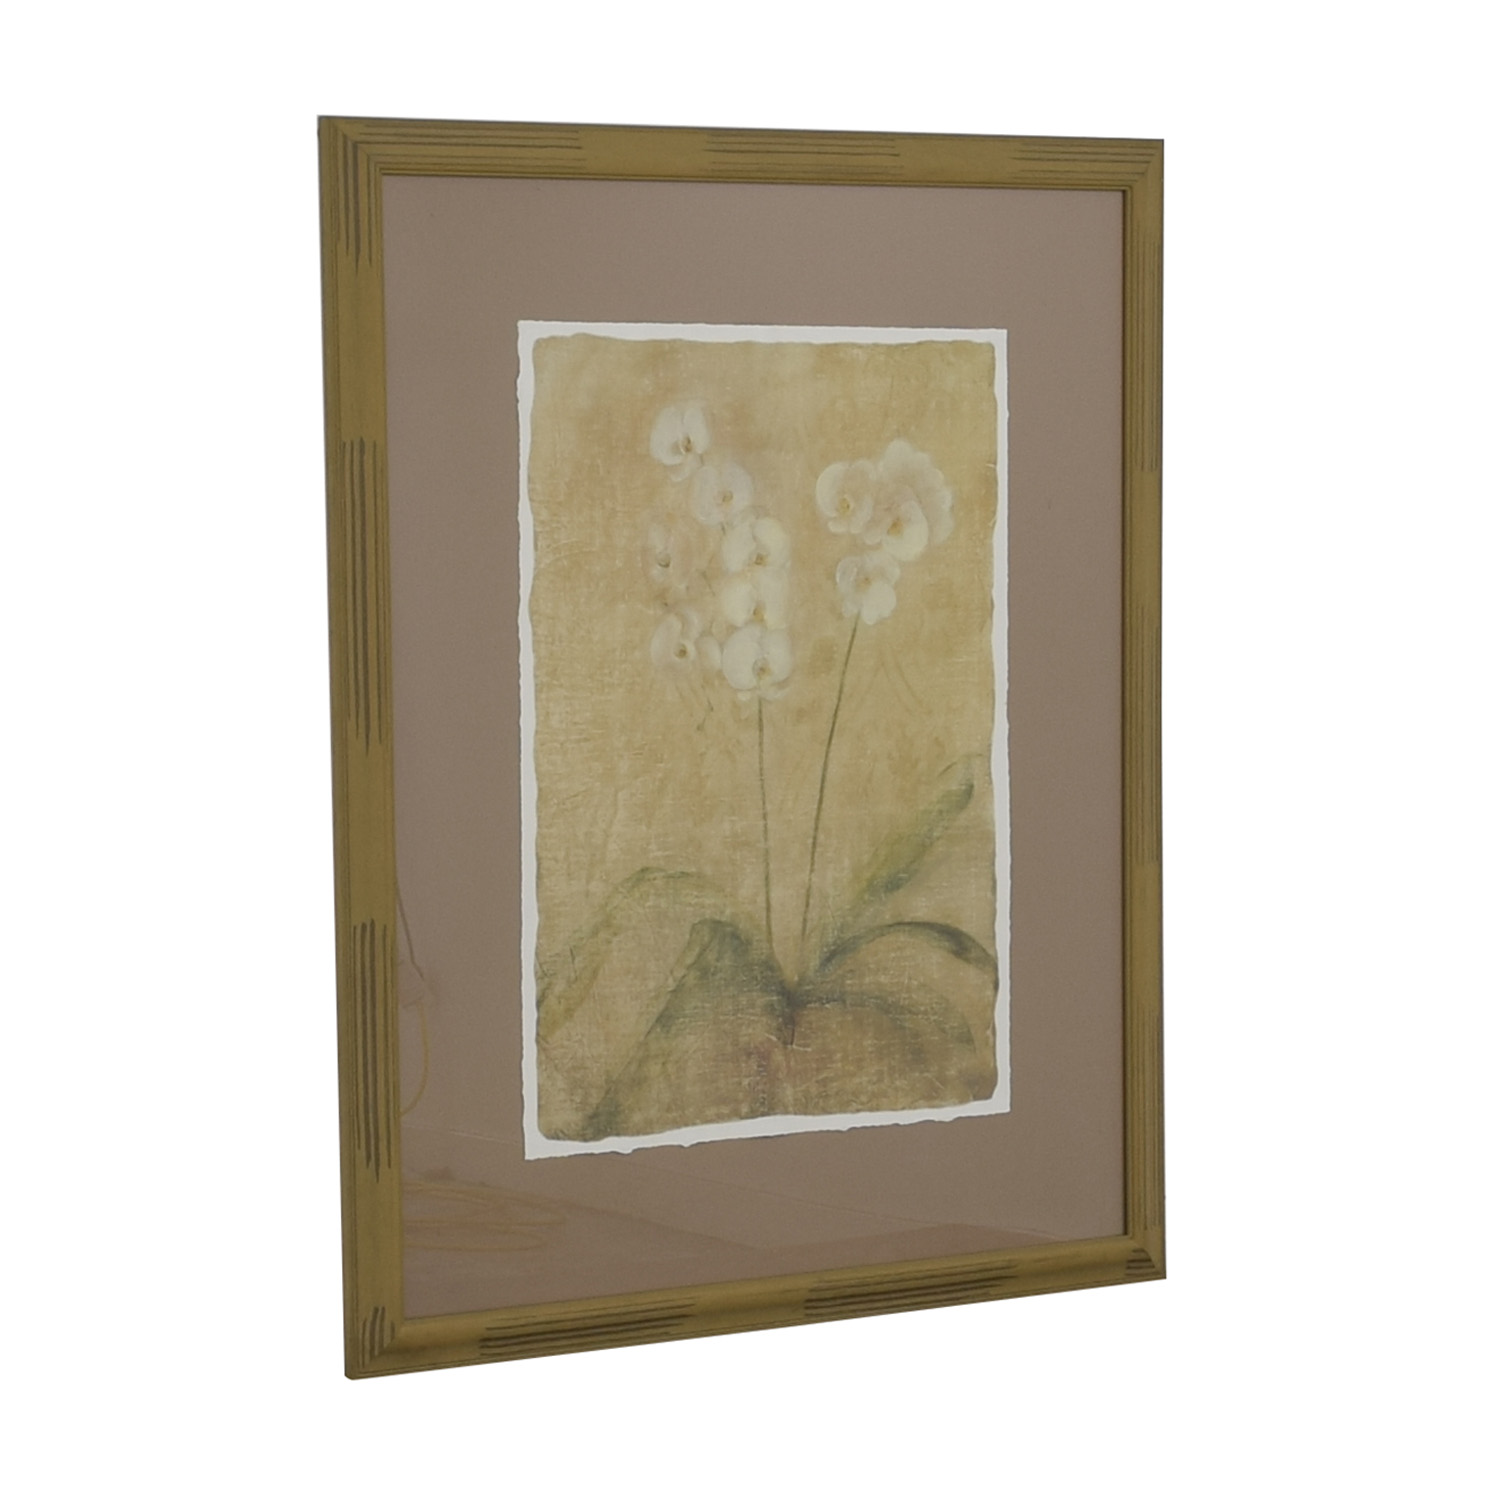 Rumrunner Home Floral Artwork Rumrunner Home